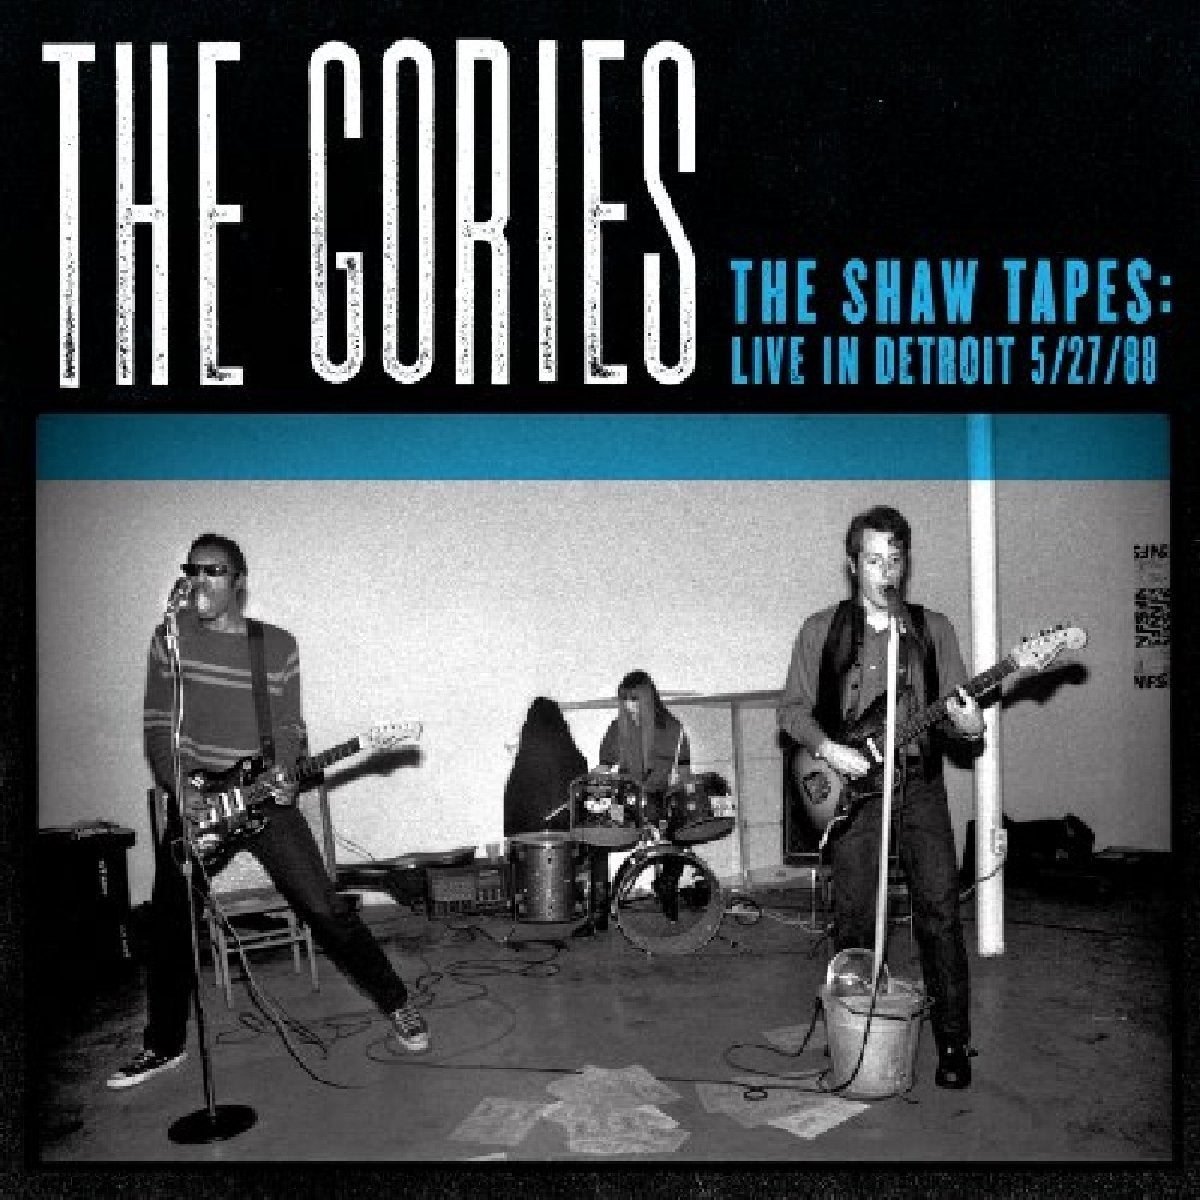 The Gories - The Shaw Tapes. Live Detroit 1988